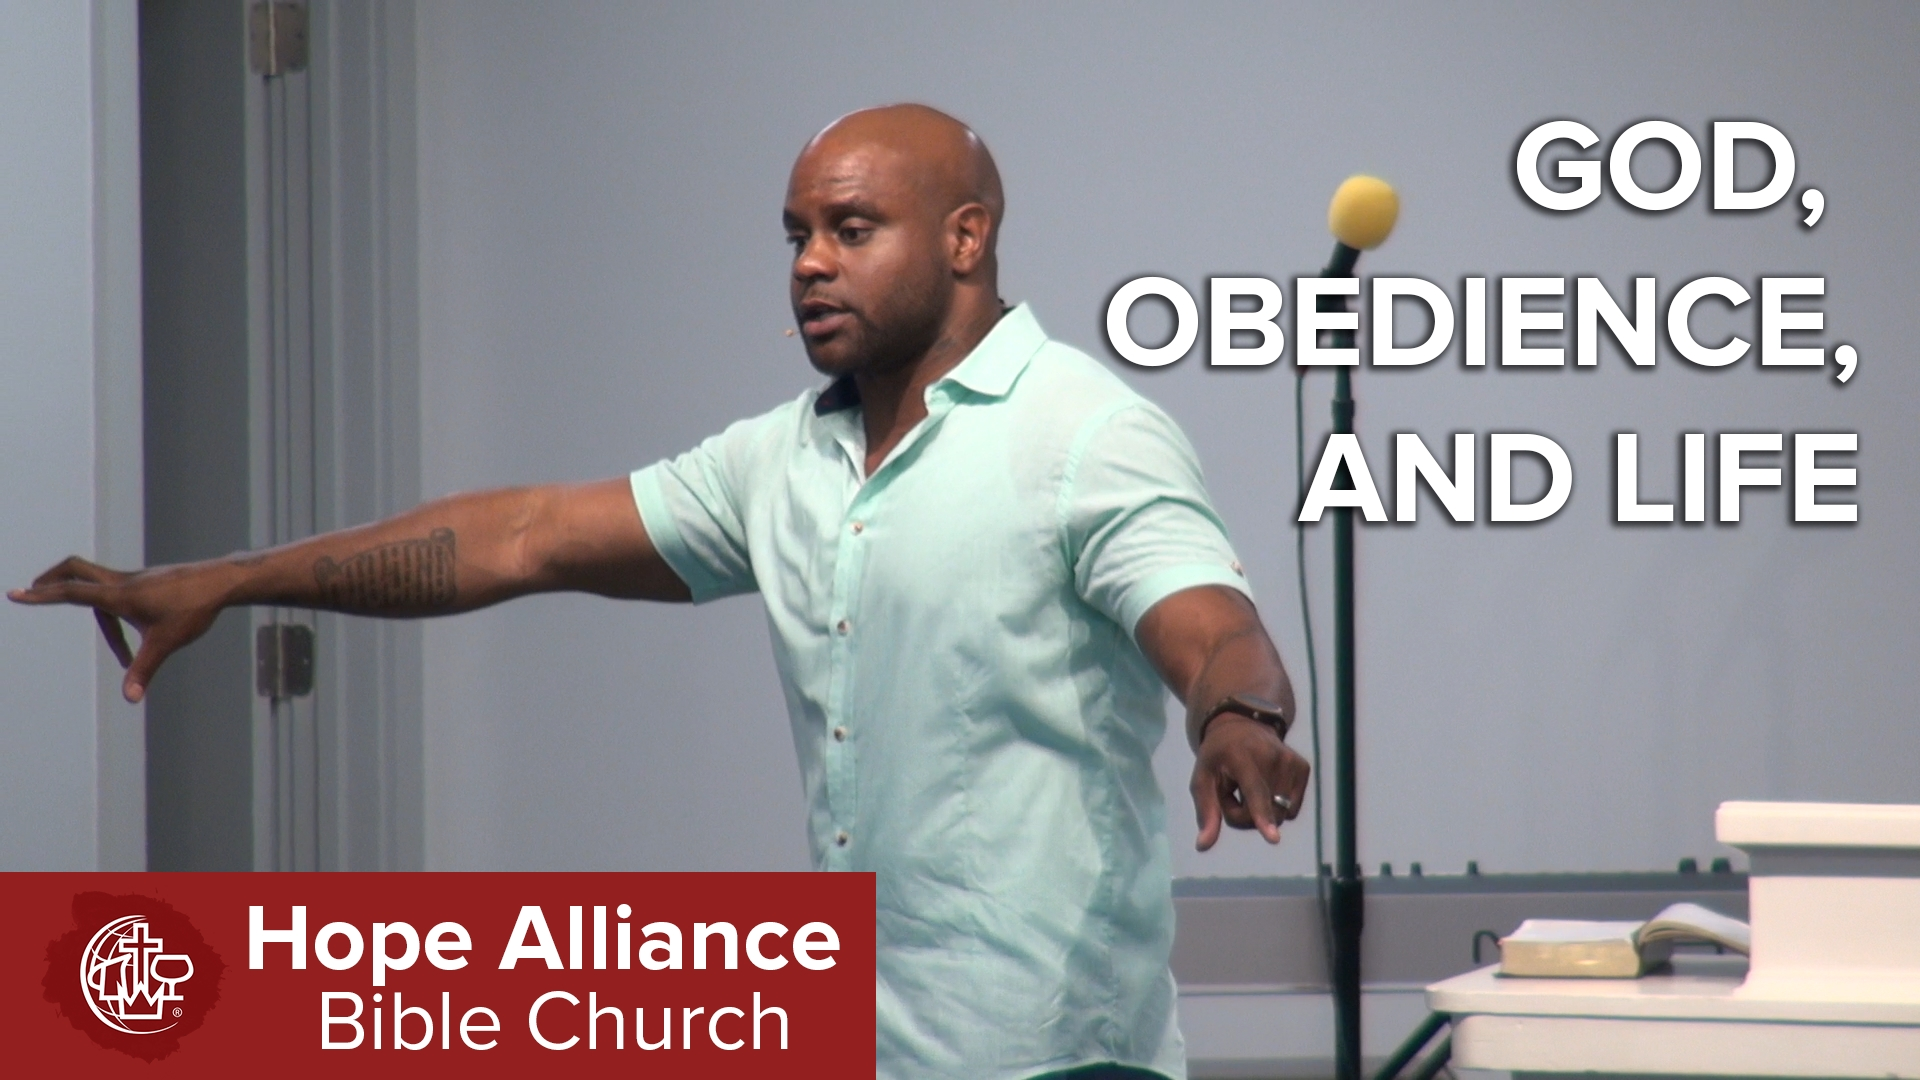 Hope Alliance Bible Church » God, Obedience, and Life